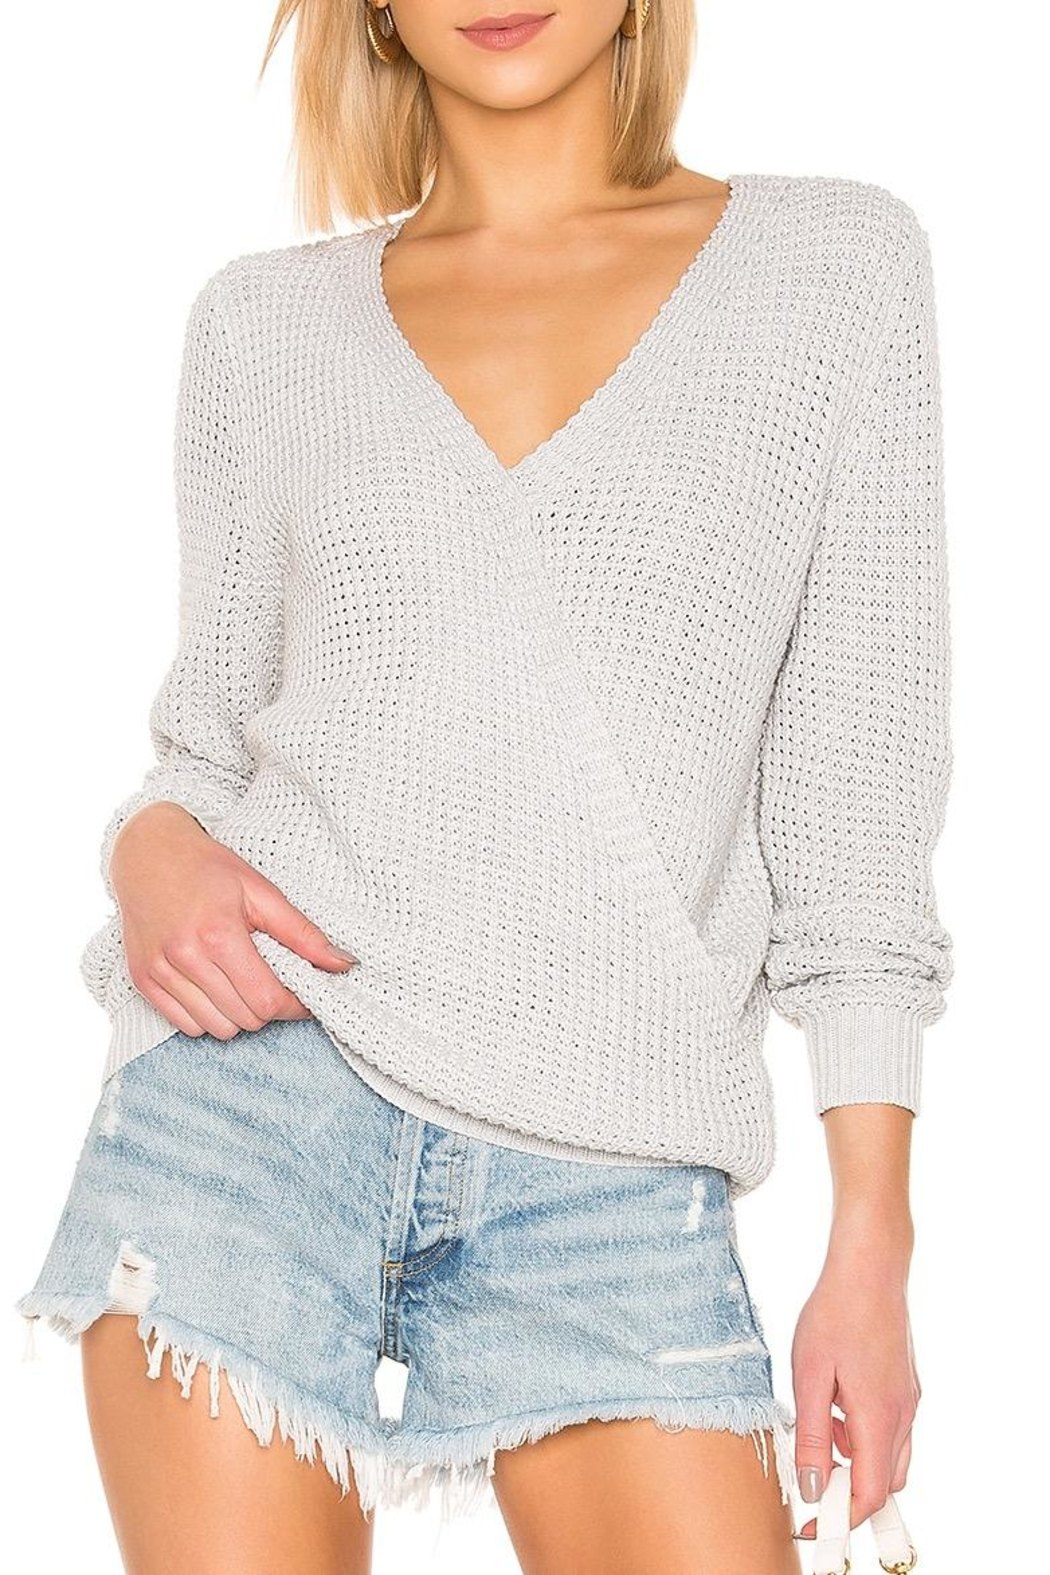 Mink Pink Victoria Cross-Over Sweater - Main Image